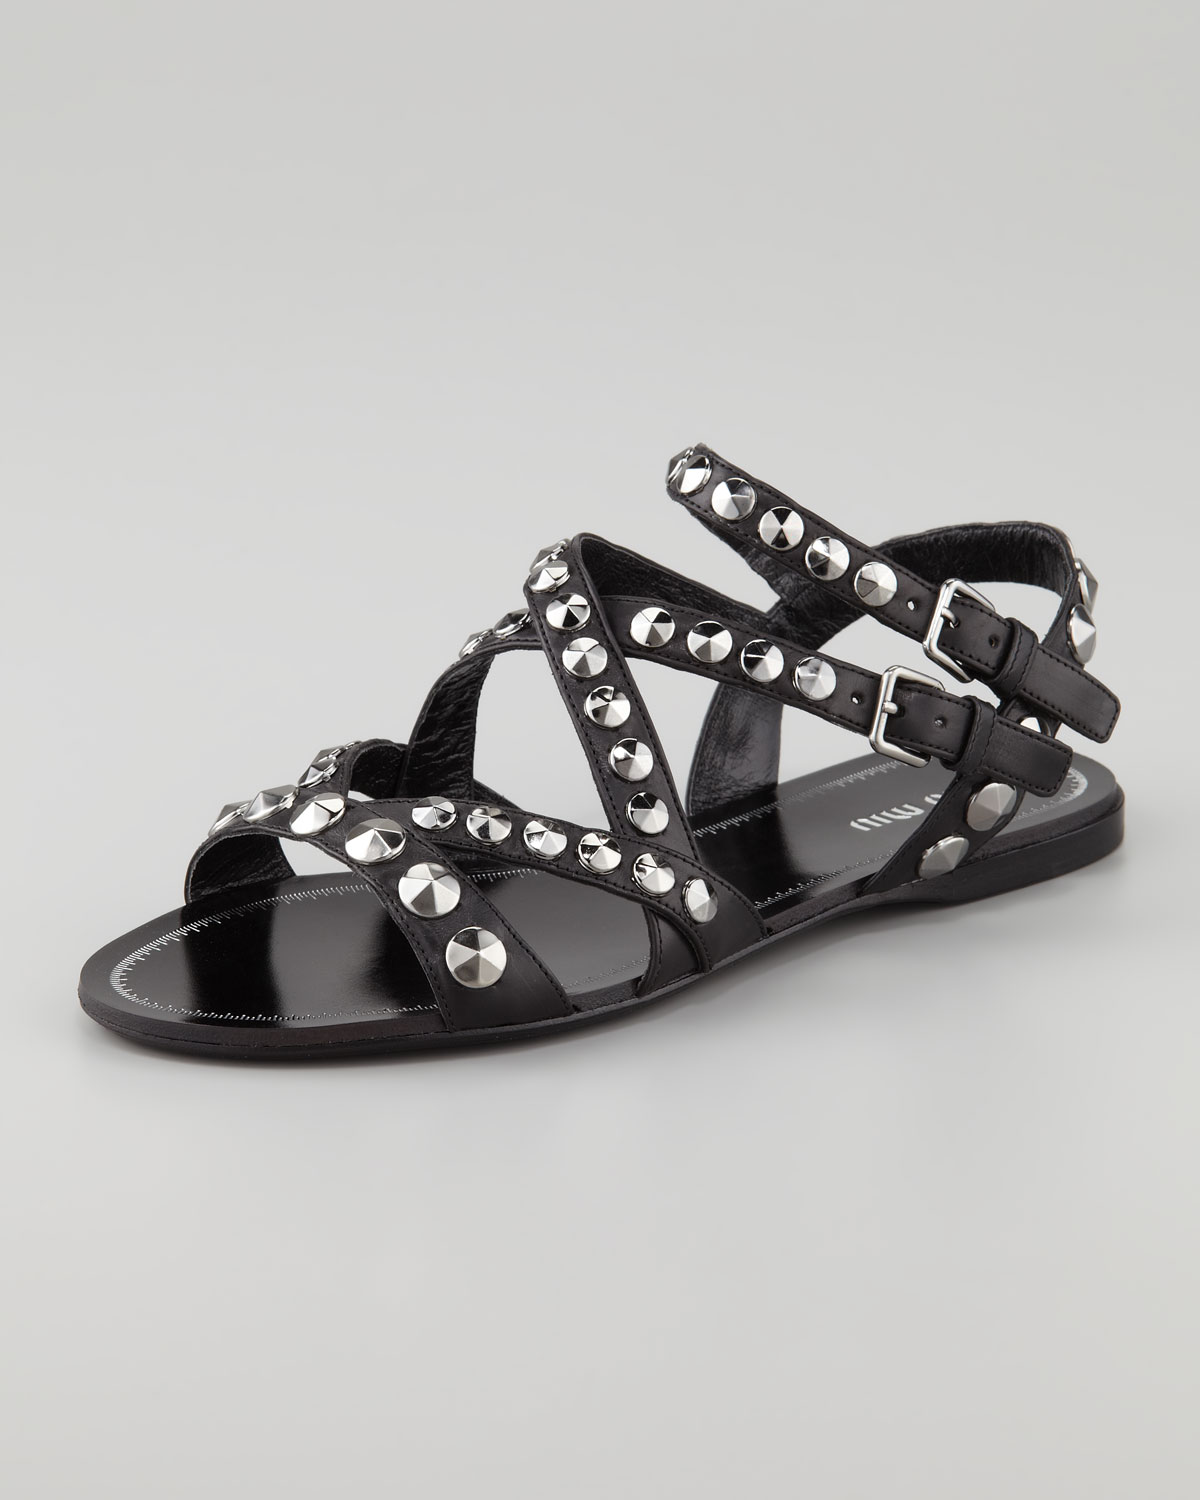 Viva Norada Shopping Shoes The Best In Stores For